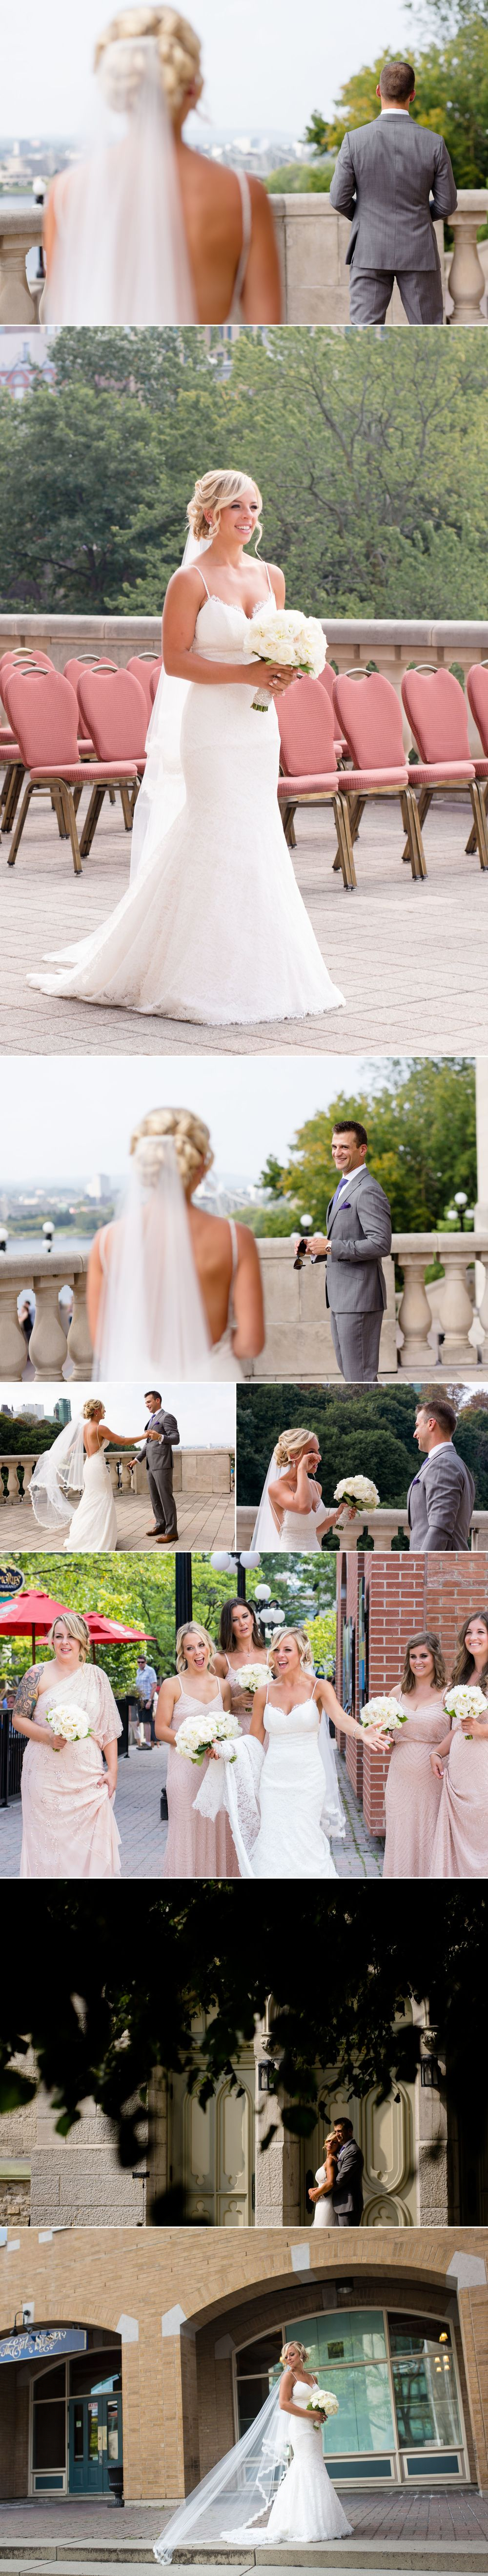 Photos of a groom getting ready and a first look at Le Chateau Laurier